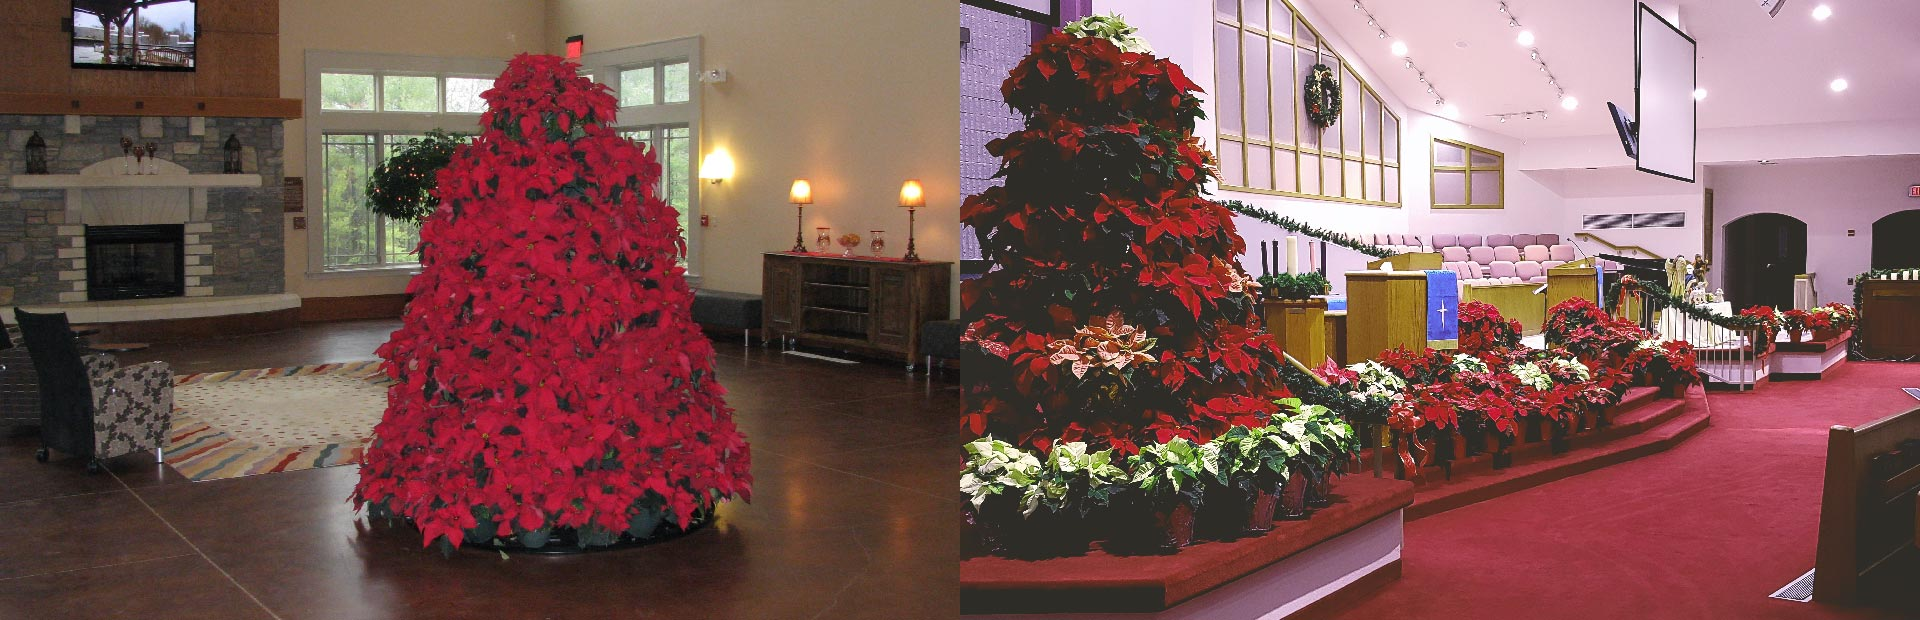 poinsettia tree displays